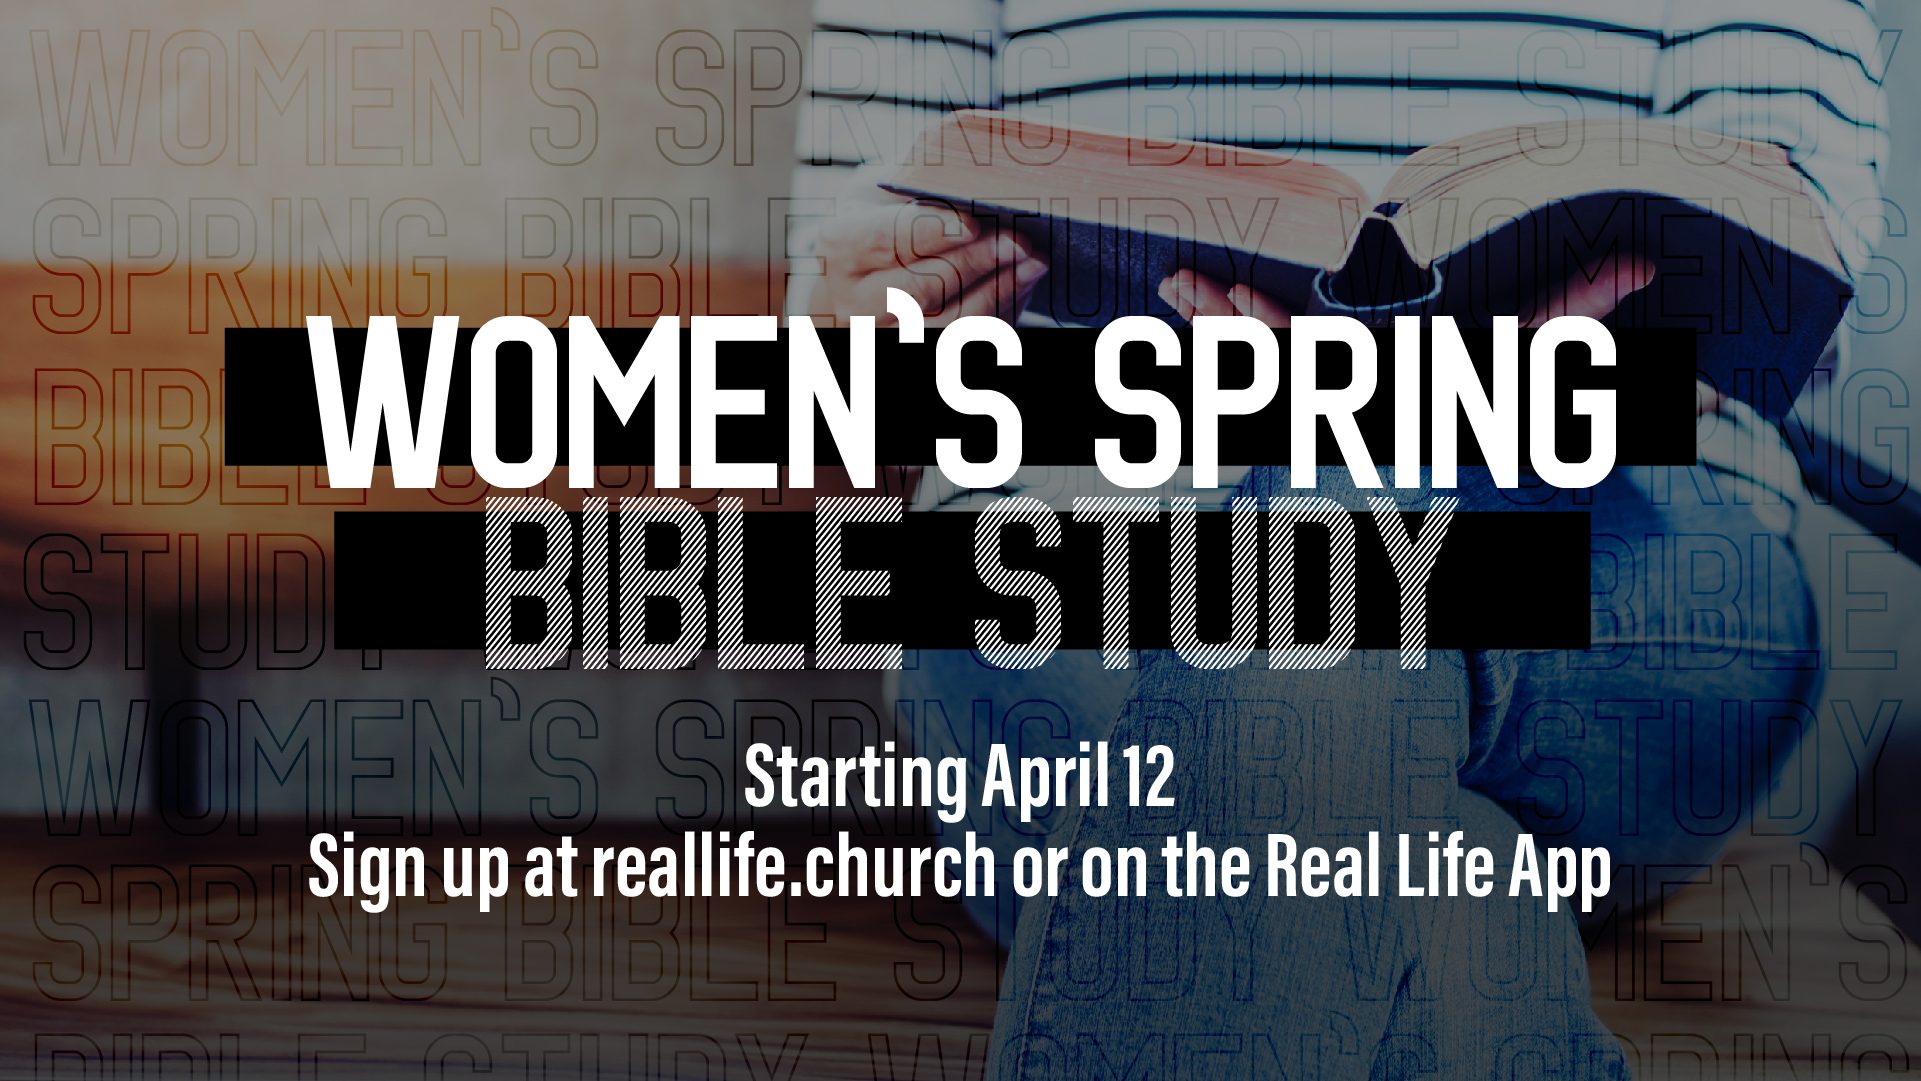 Women's Ministry Spring Bible Study